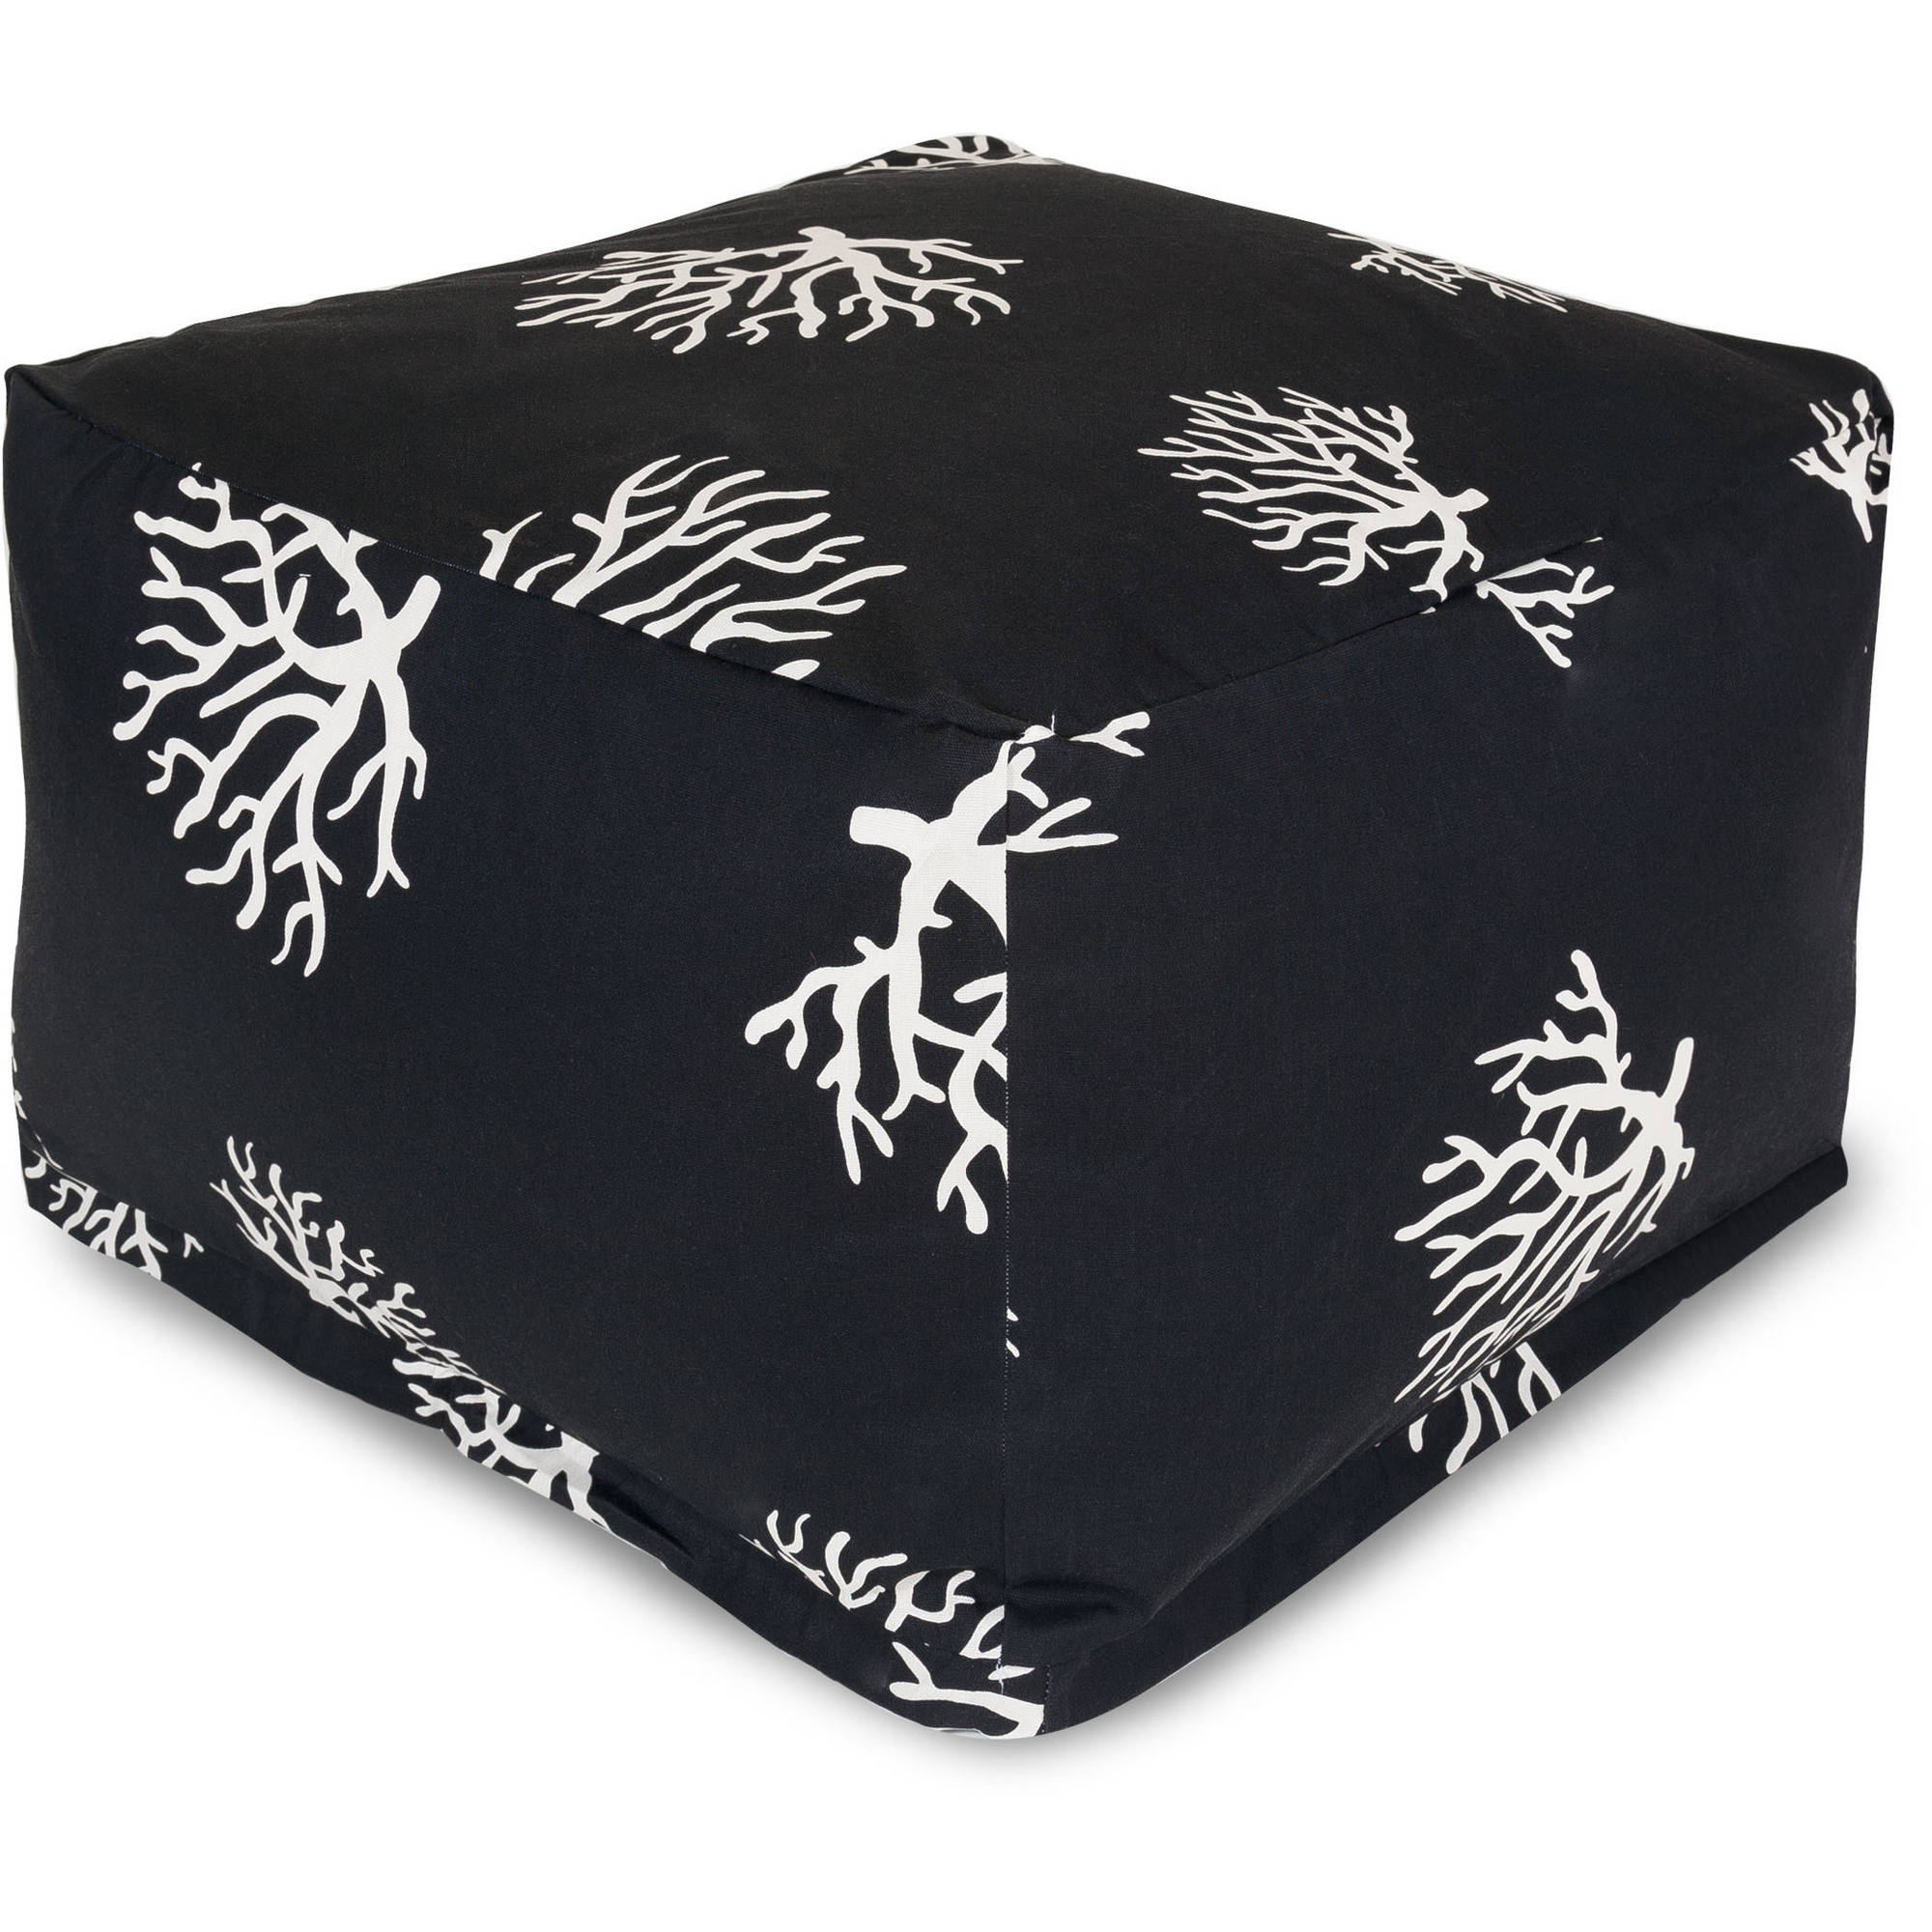 Majestic Home Goods Black Coral Bean Bag Ottoman, Indoor/Outdoor